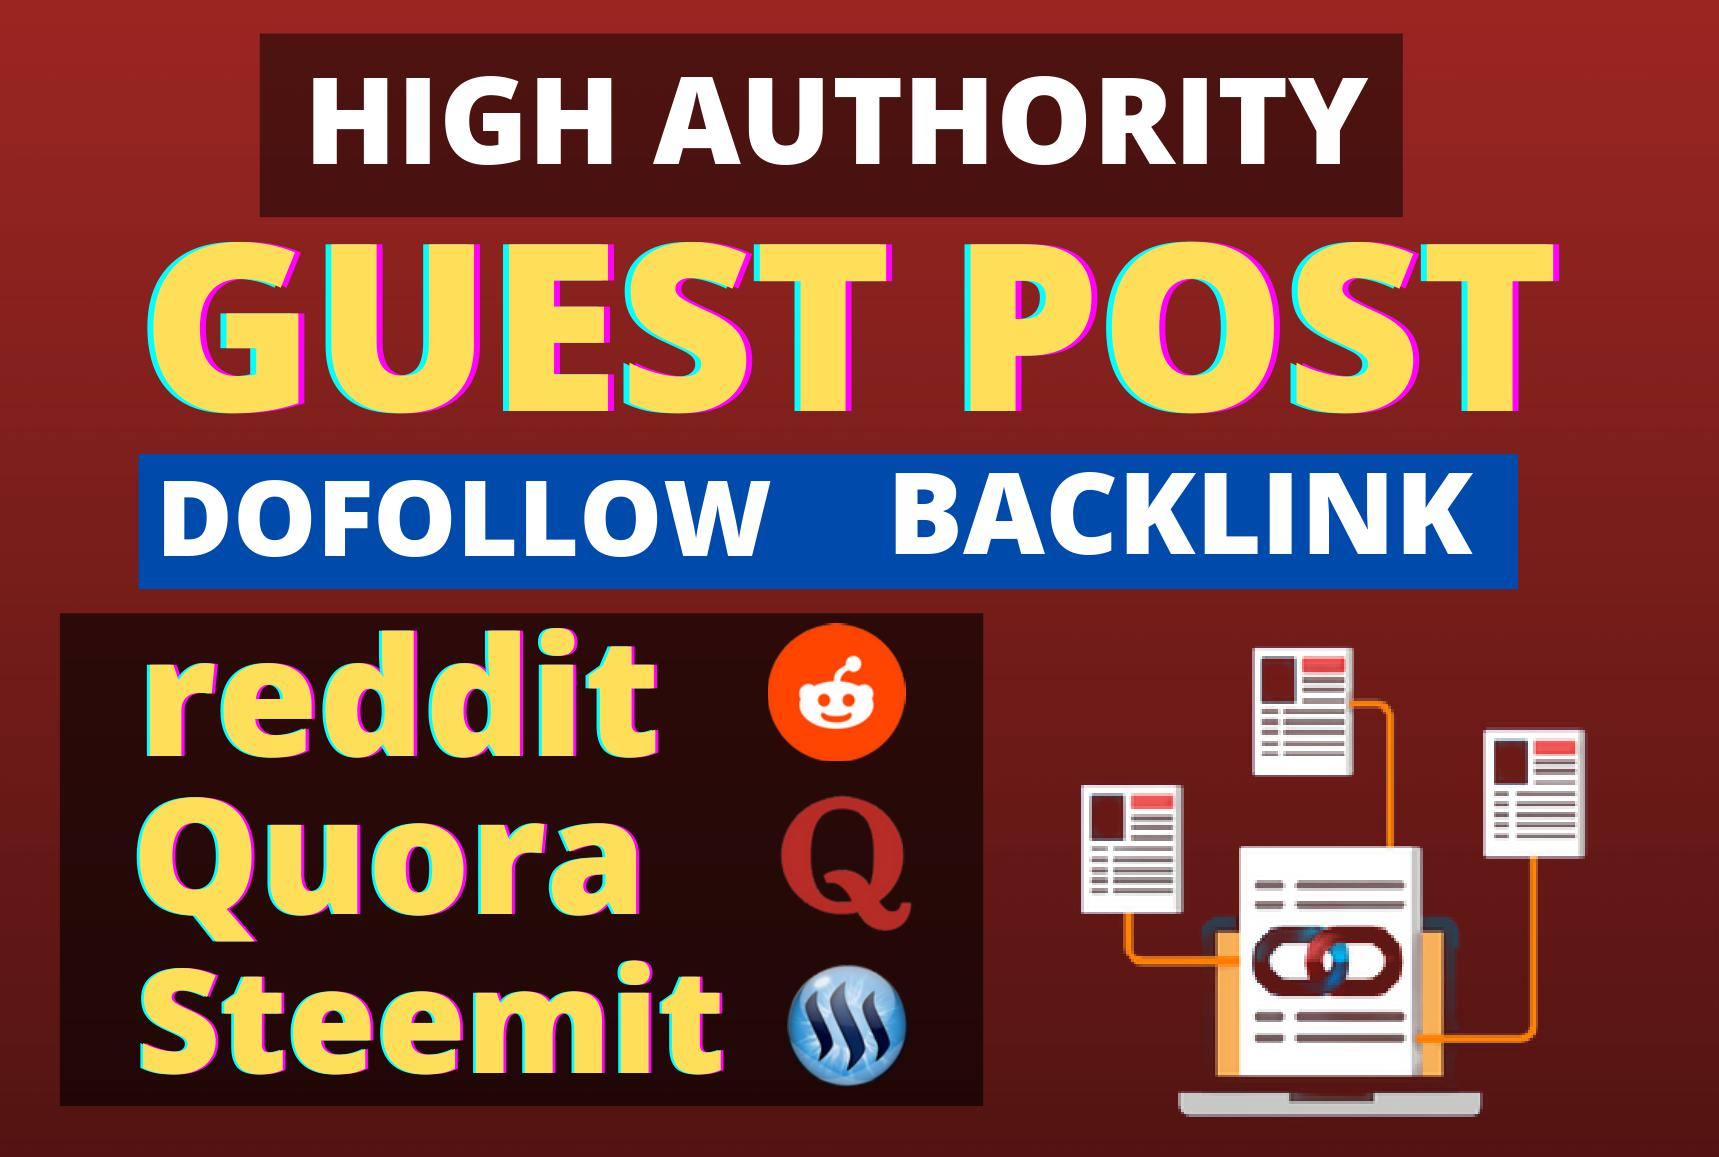 I'll Write and Publish High Quality 03 Guest Post on Quora,reddit,steemit with Natural Backlinks